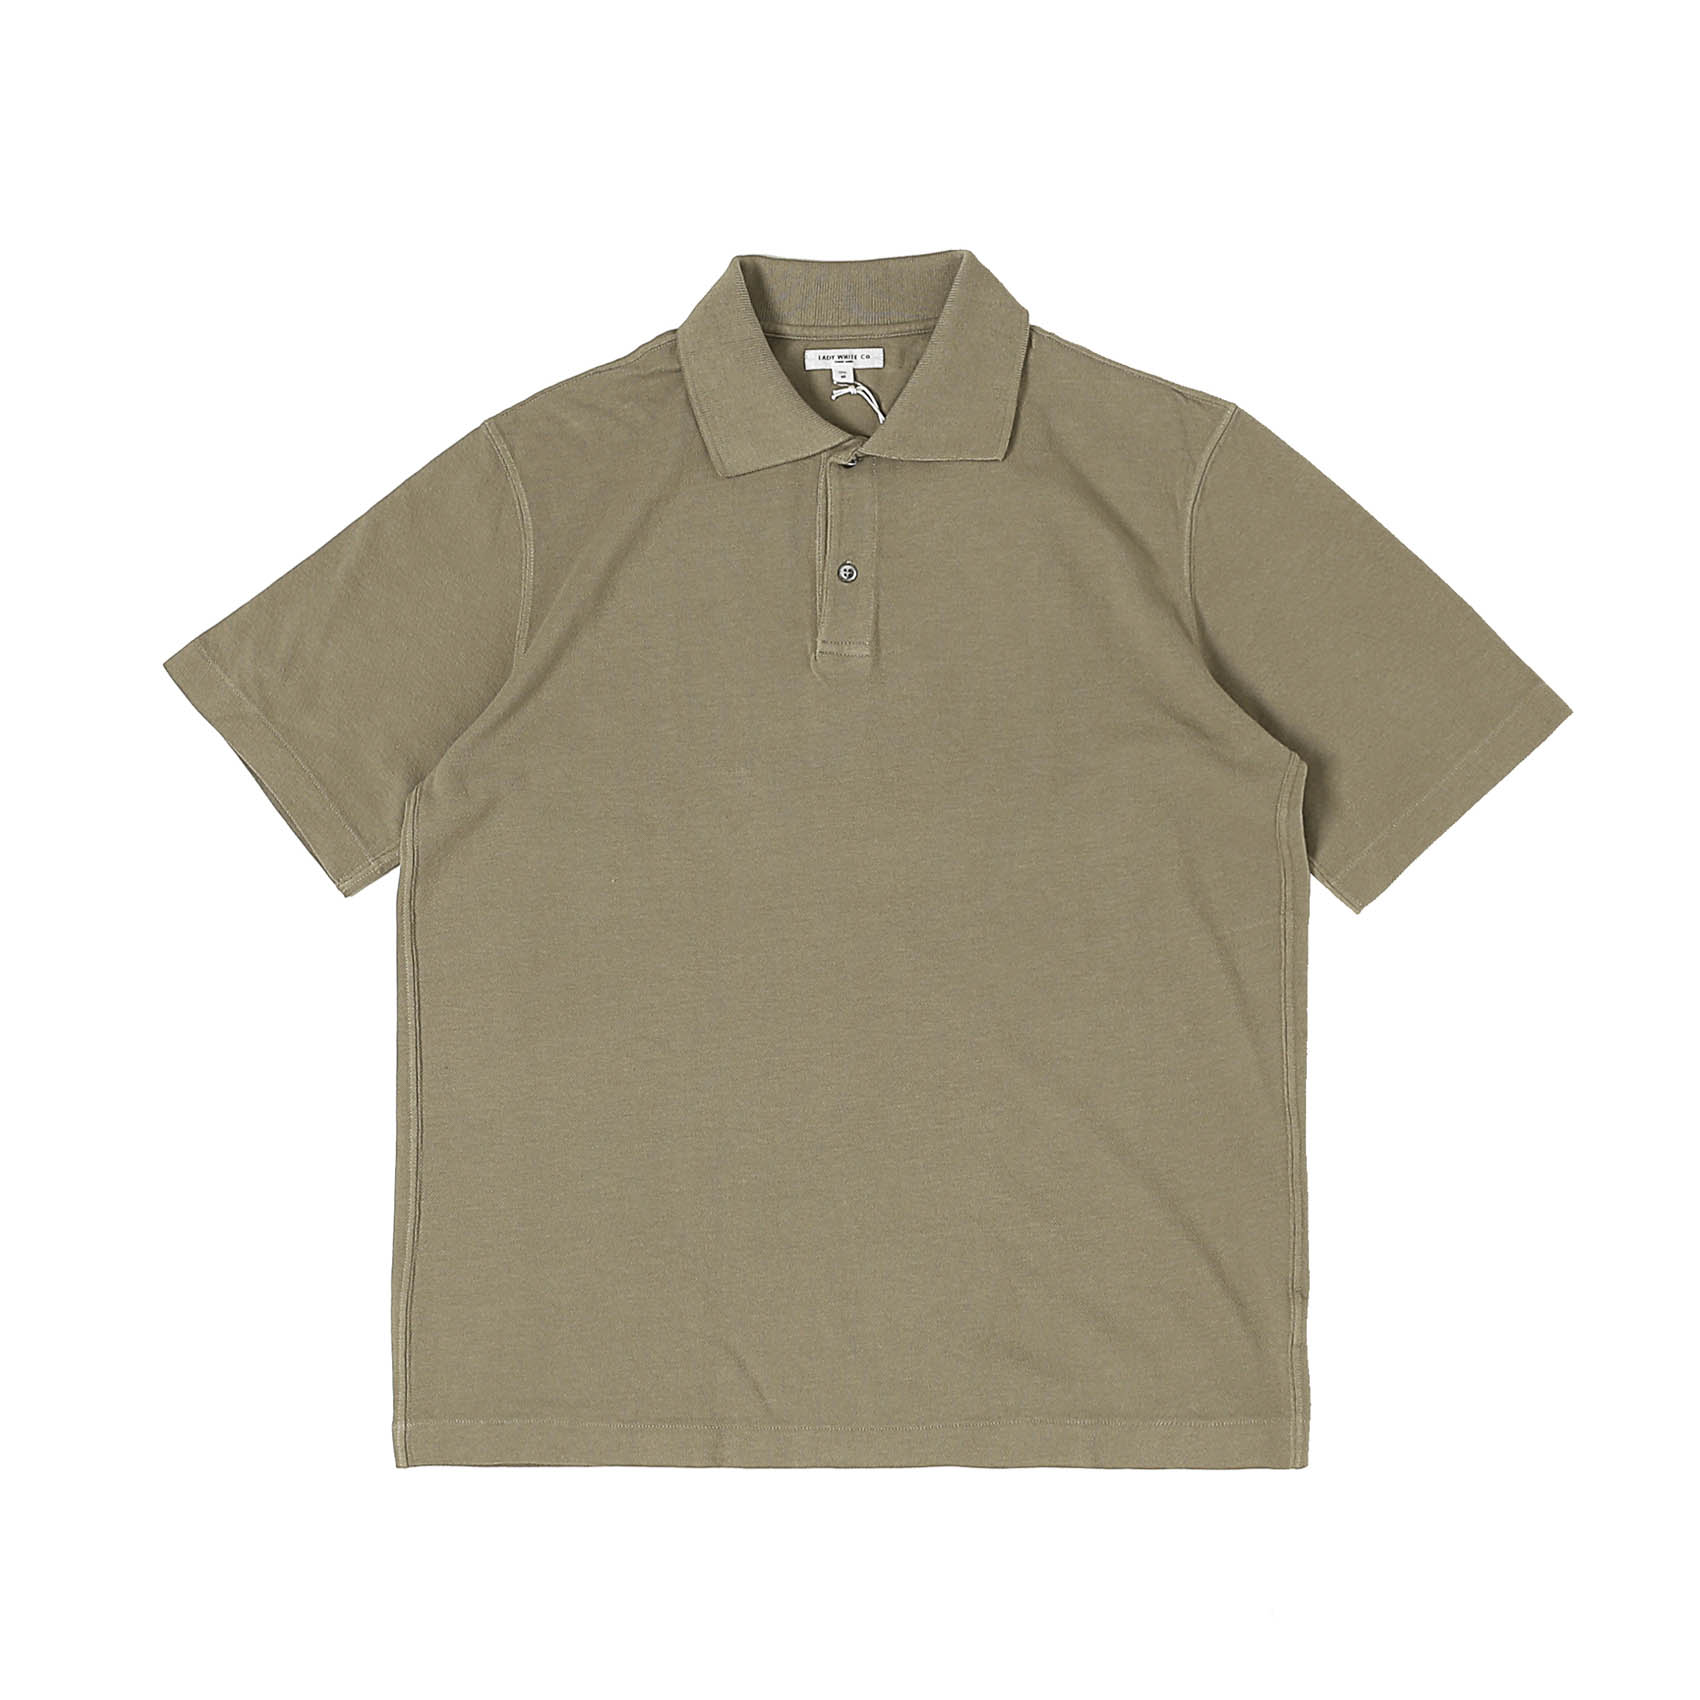 S/S TWO BUTTON POLO - ALMOND